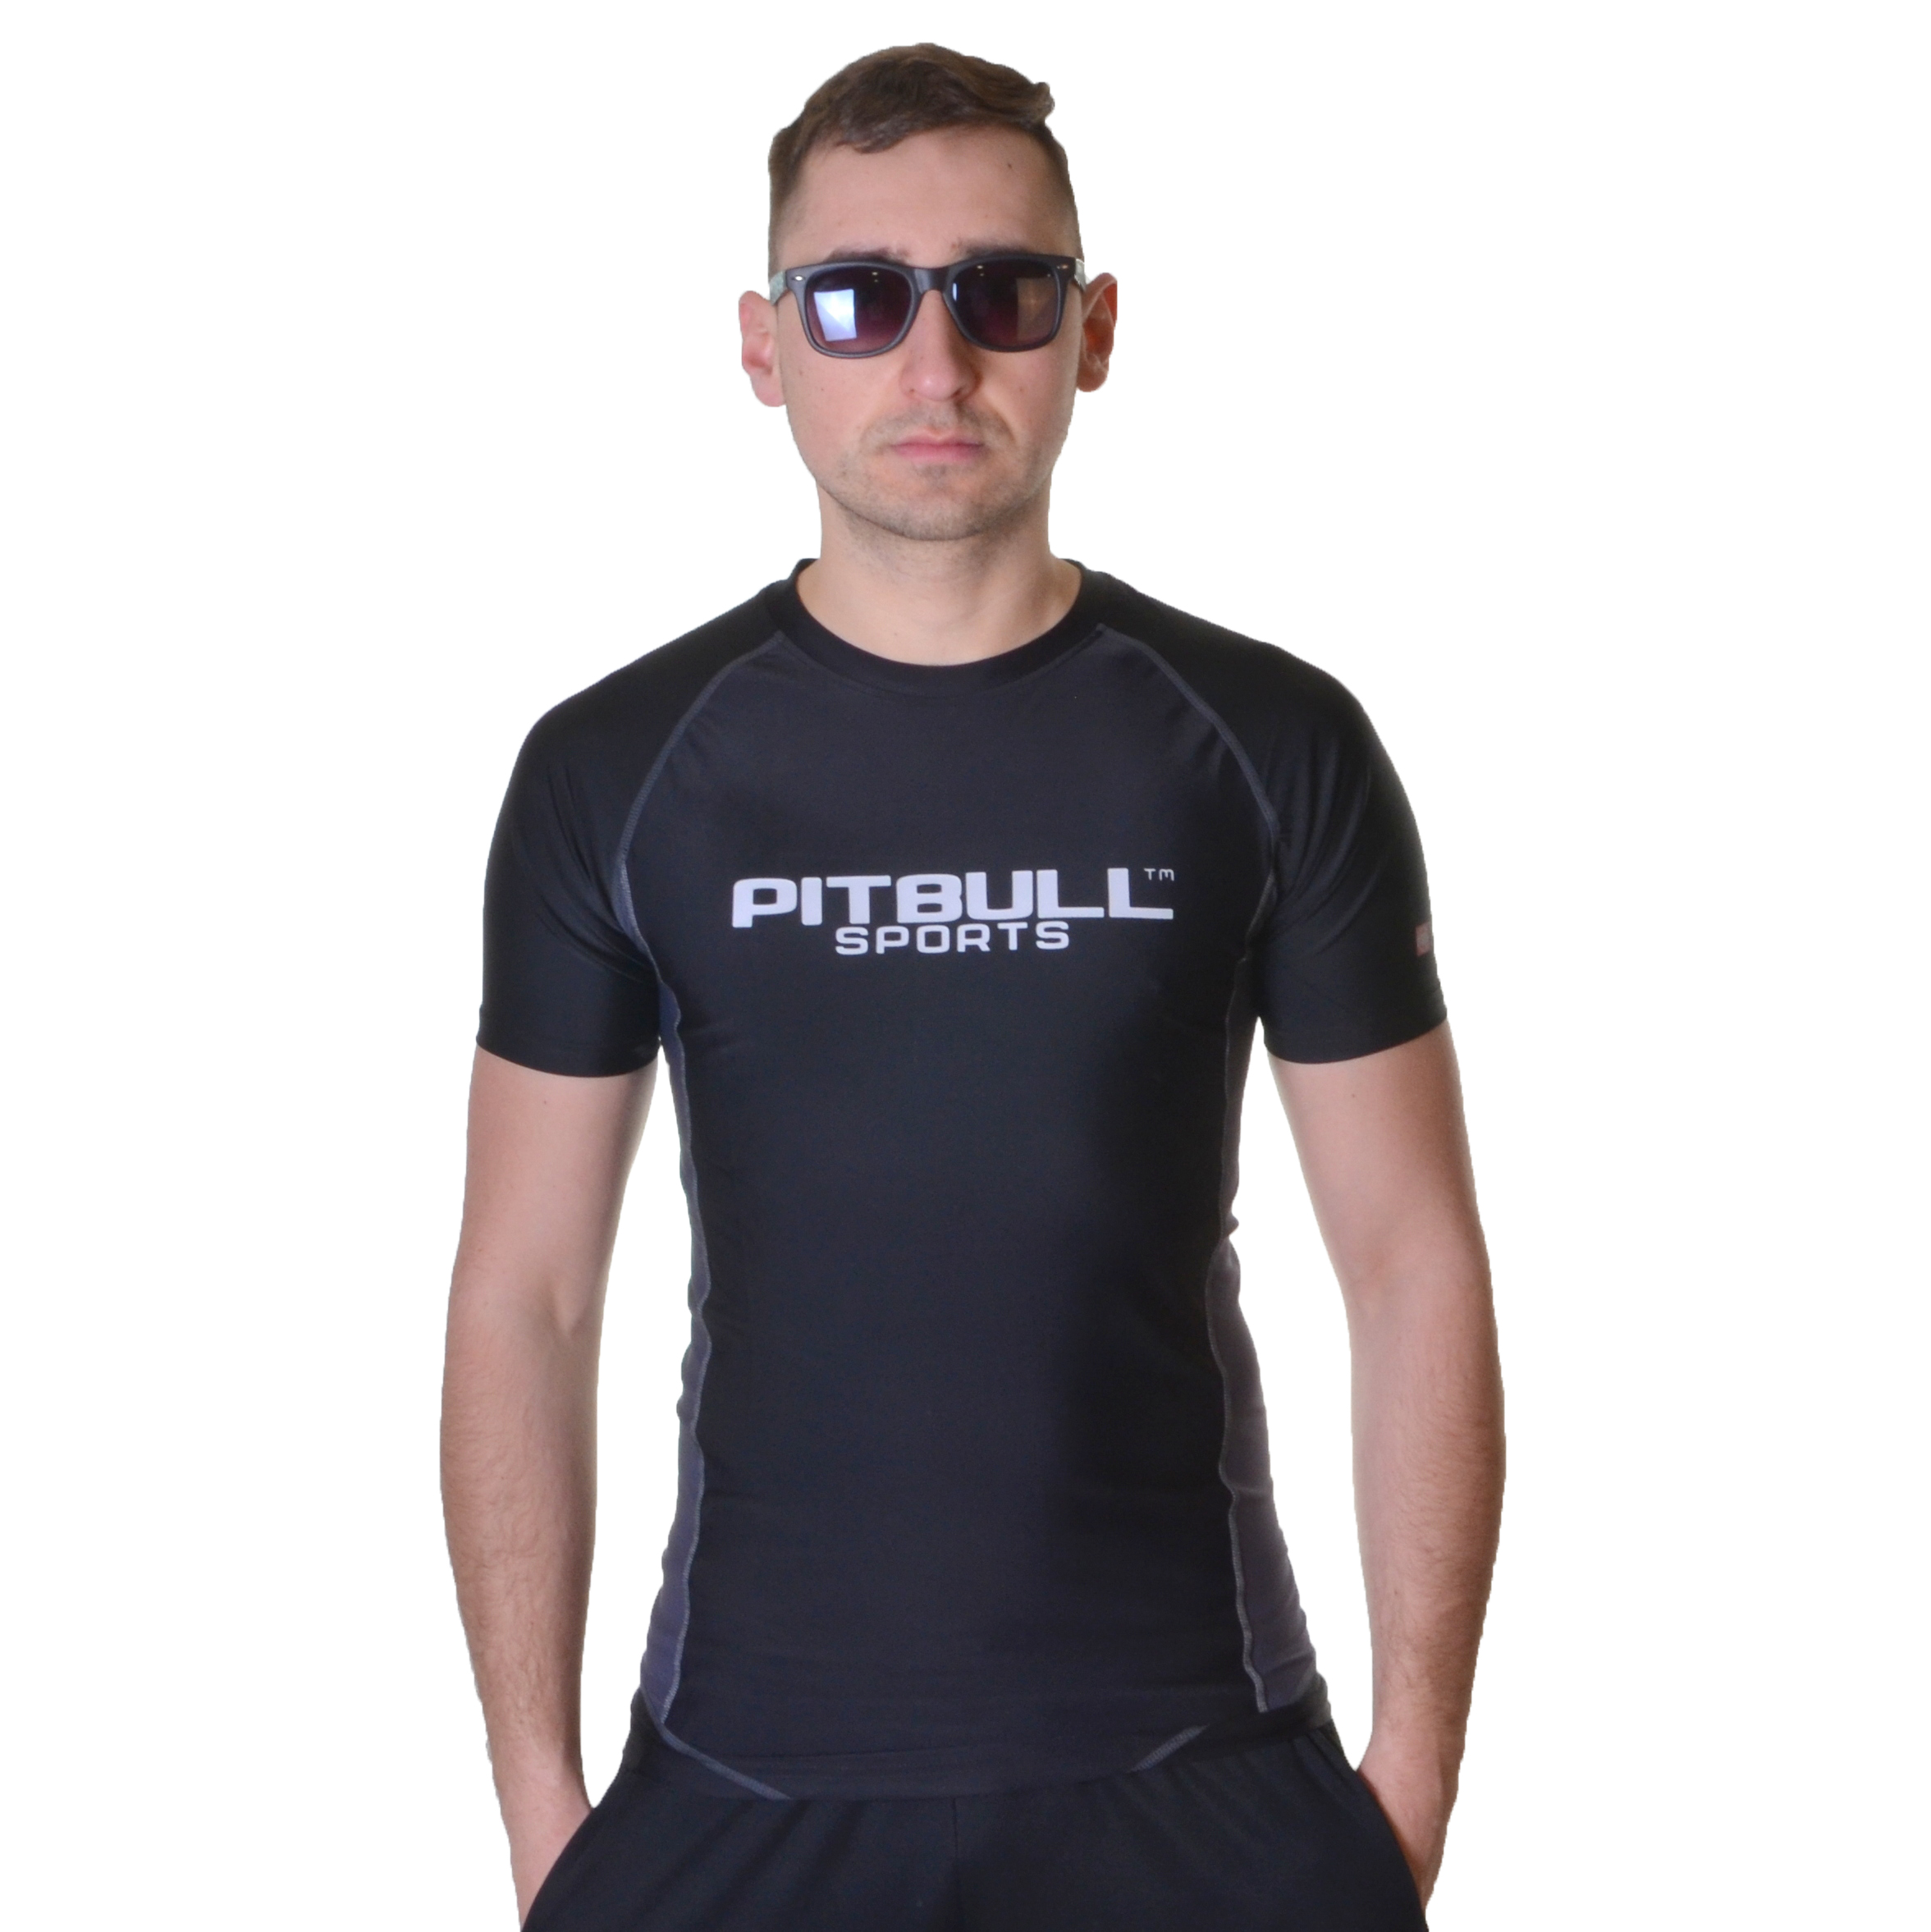 PIT BULL WEST COAST RASHGUARD COMPRESSION PRO PLUS CZARNY